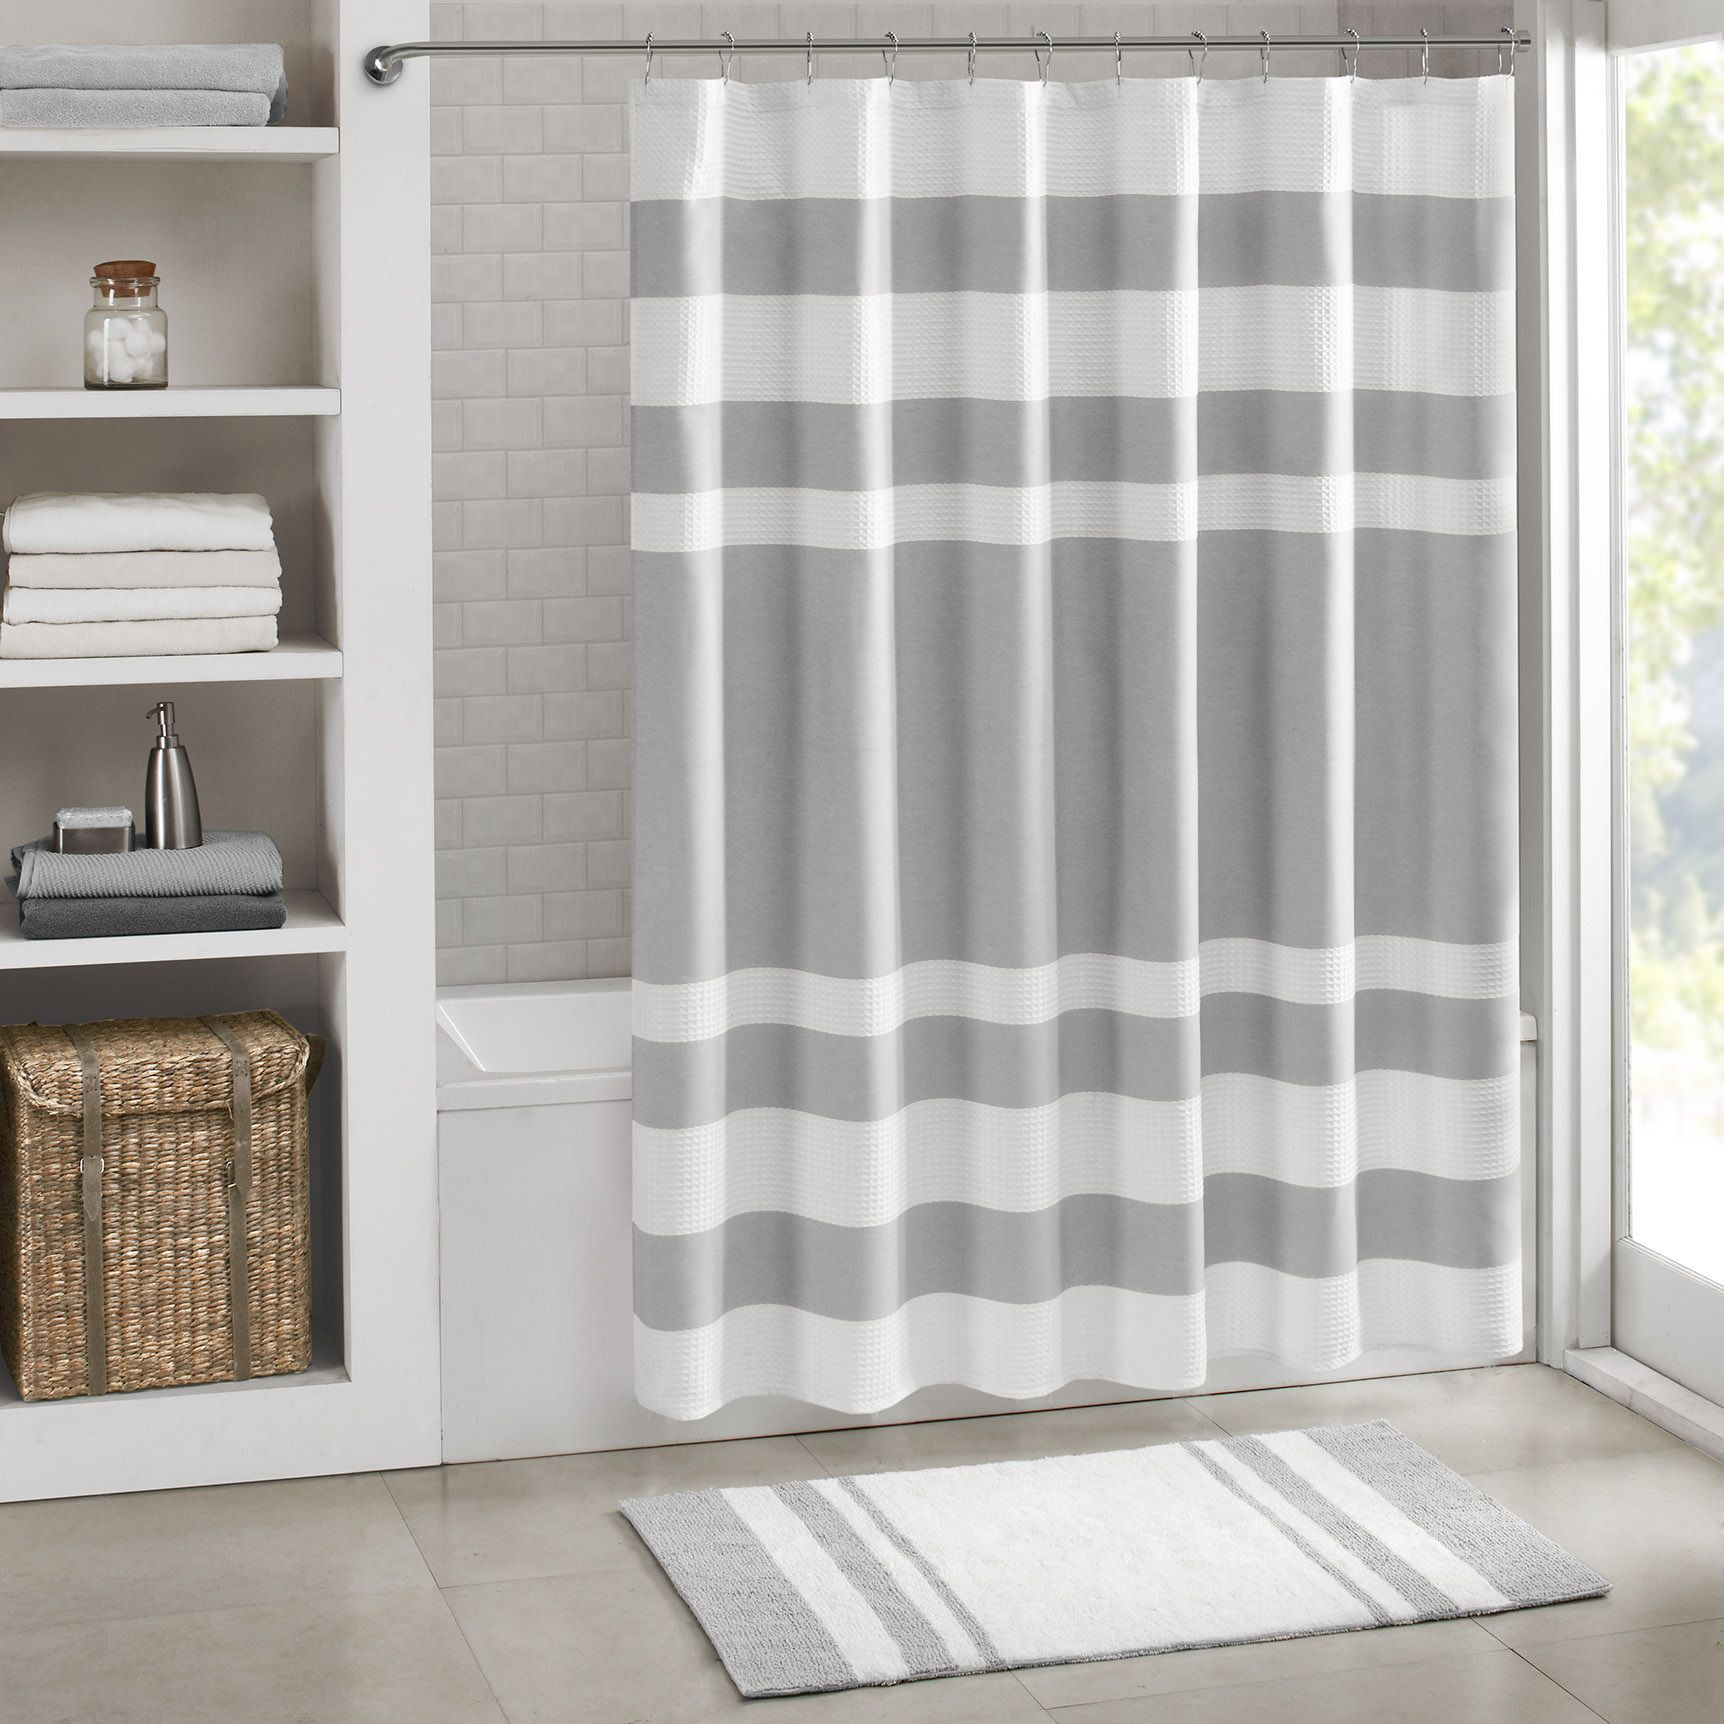 Clay Alder Home Niantic Shower Curtain With 3M Treatment (72X72 Grey),